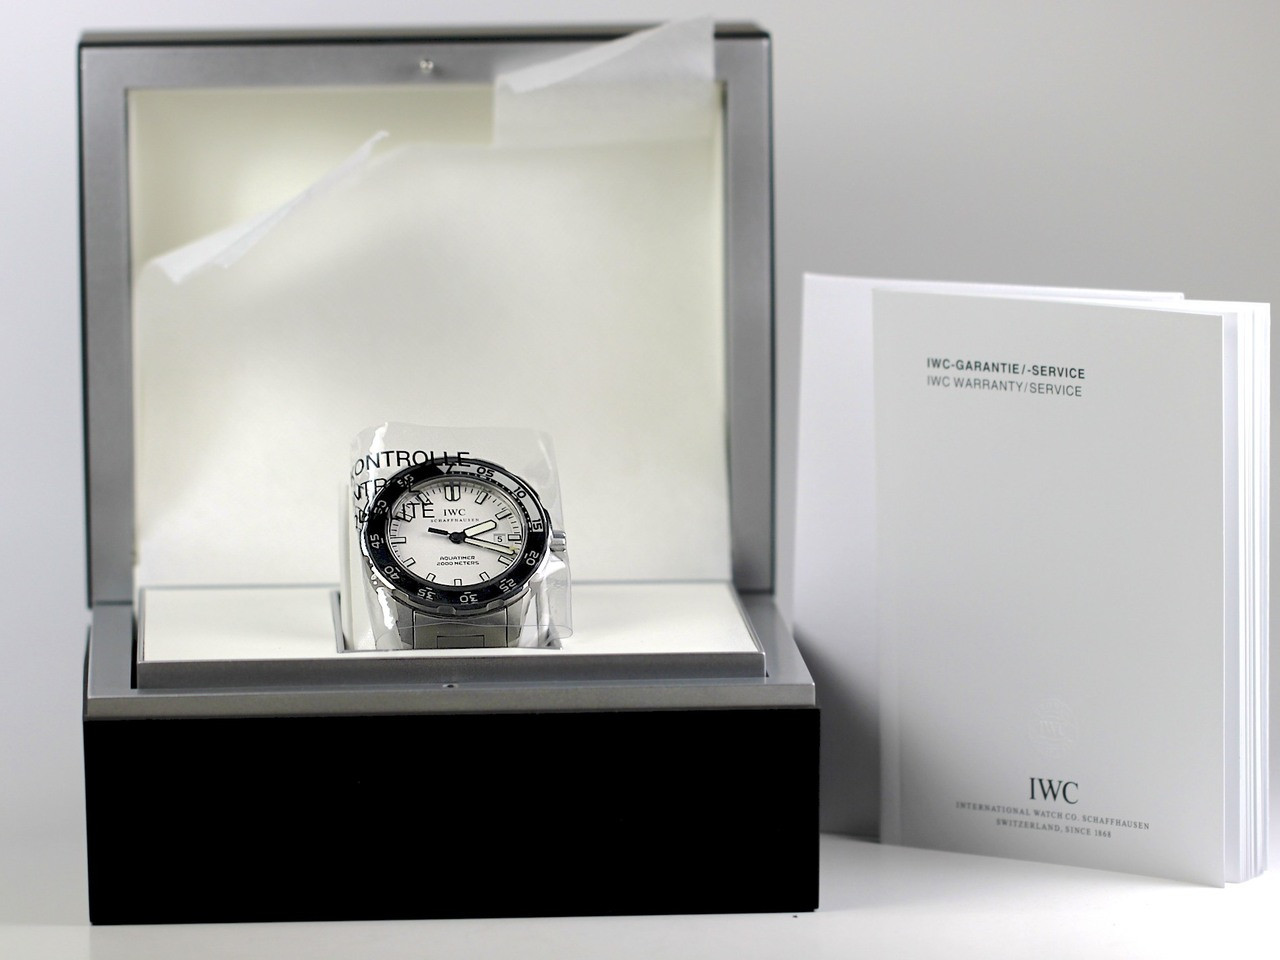 Complete Box & Papers - IWC Watch - Aquatimer 2000 Automatic IW356809 - www.Legendoftime.com - Chicago Watch Center